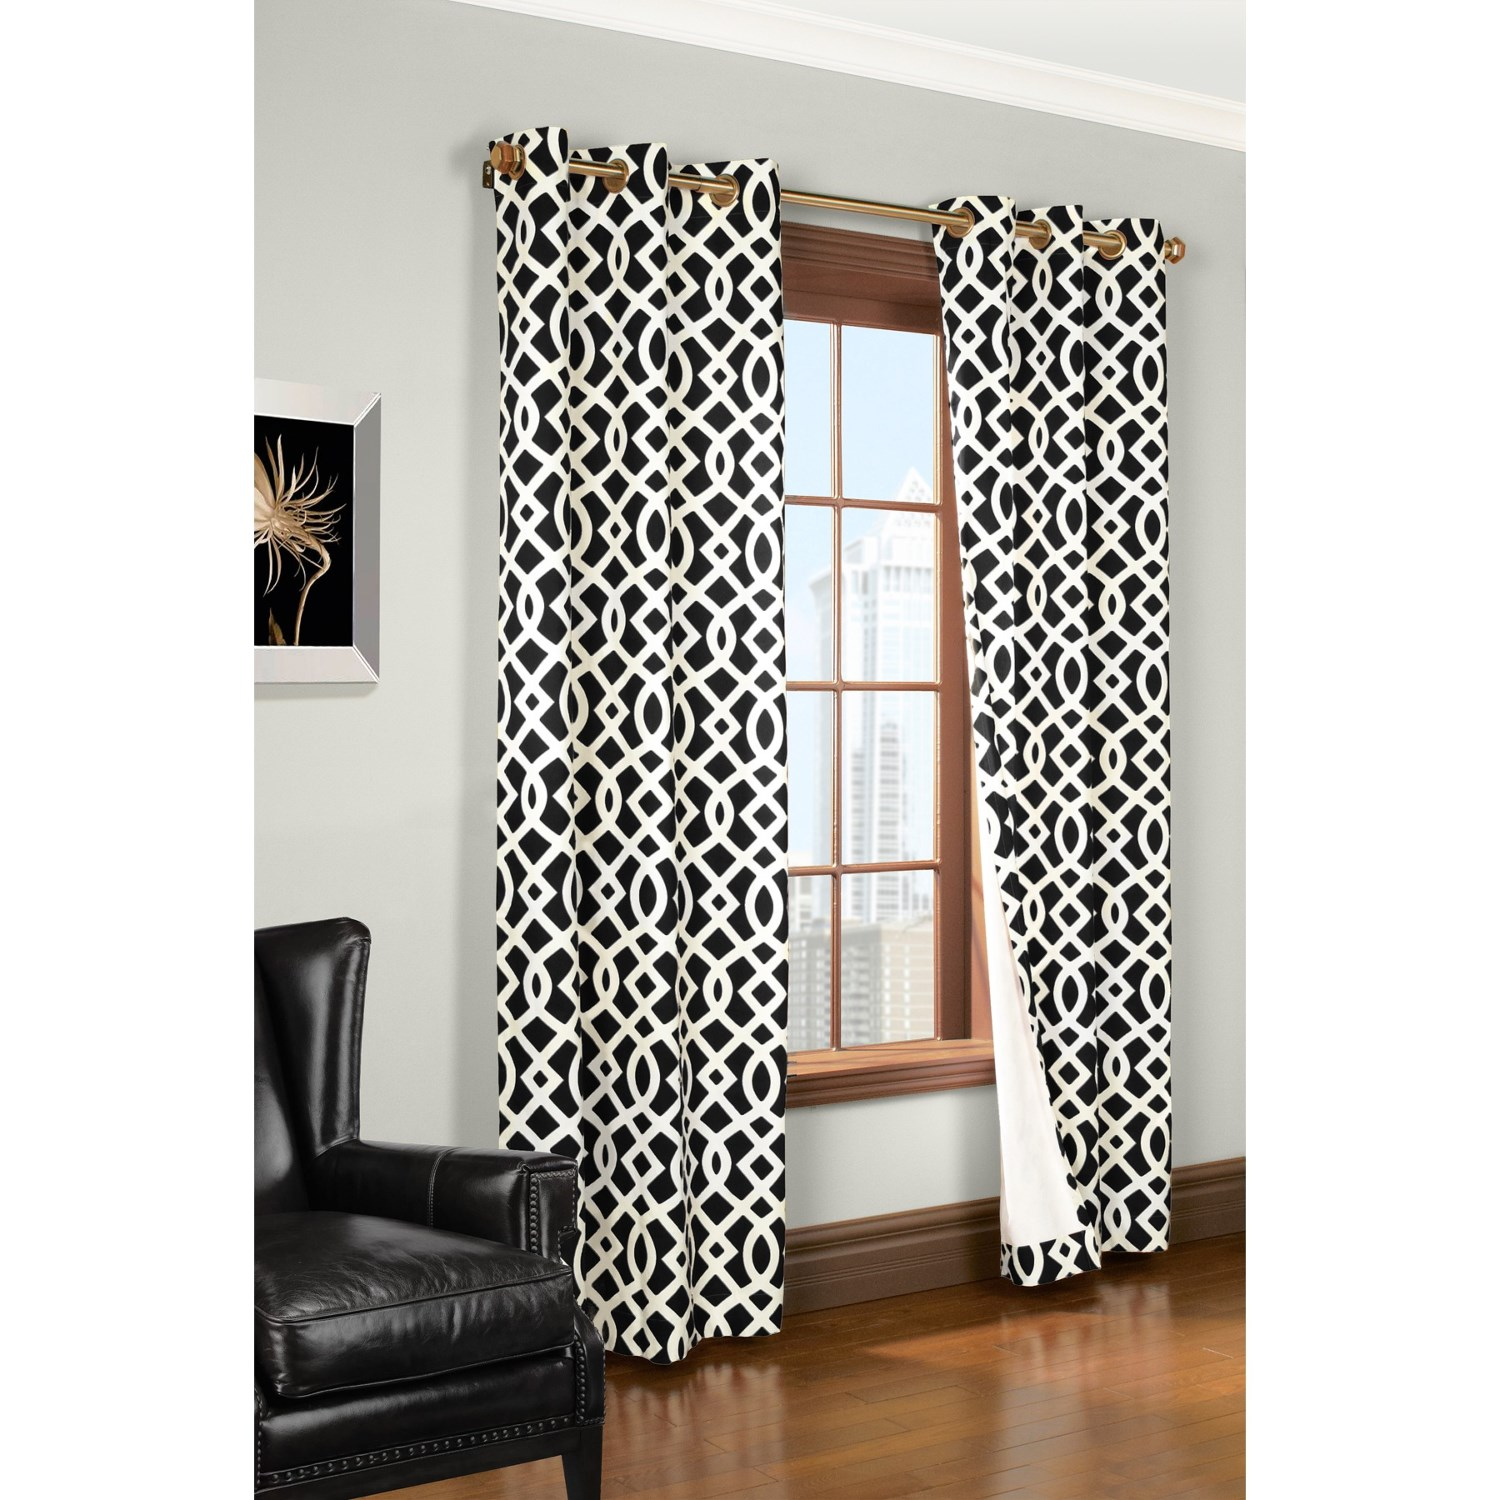 thermalogic weathermate trellis curtains 80x84 grommet top insulated save 39